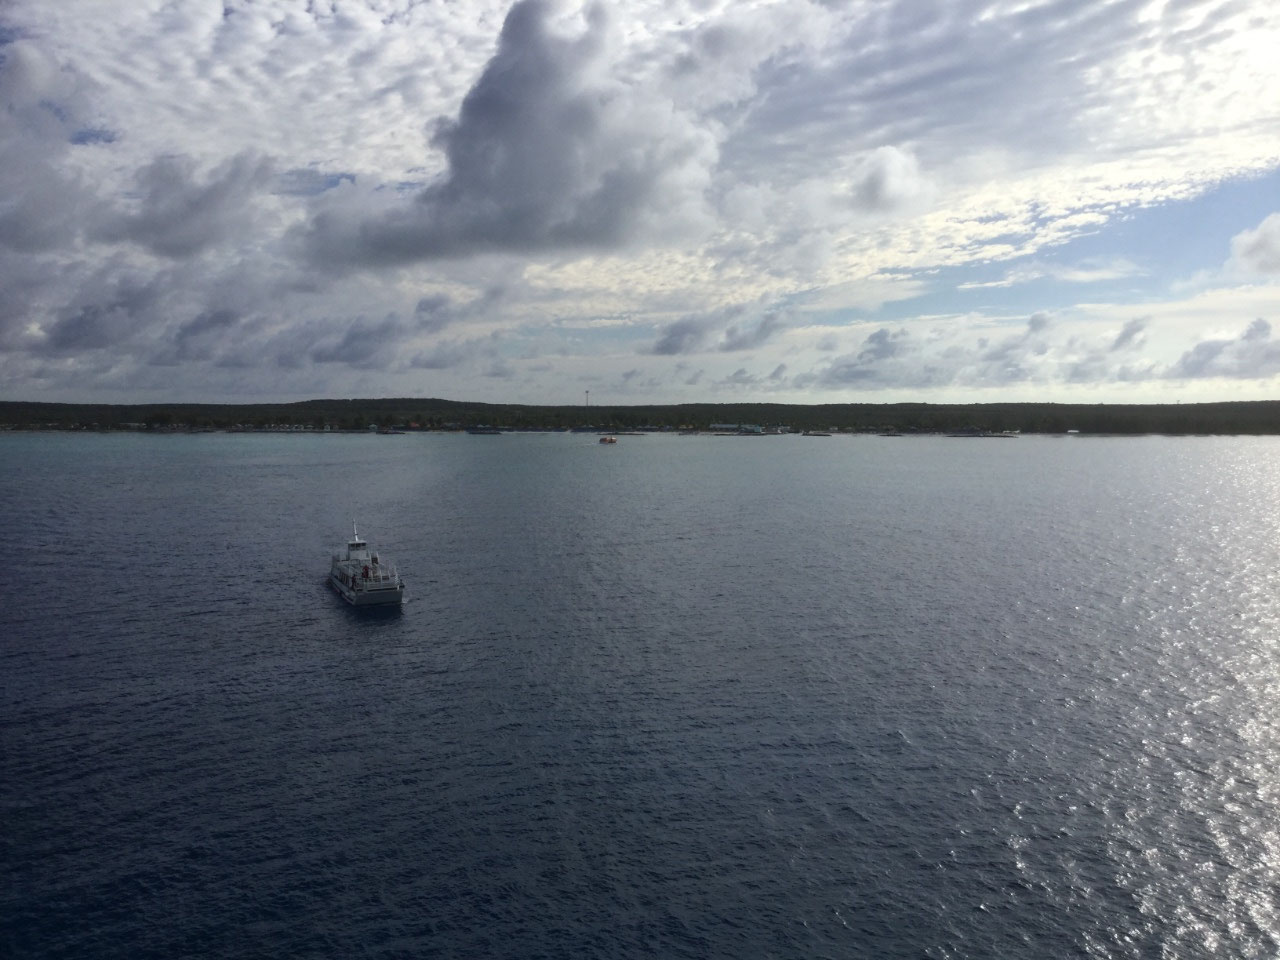 A tender heading to Princess Cays